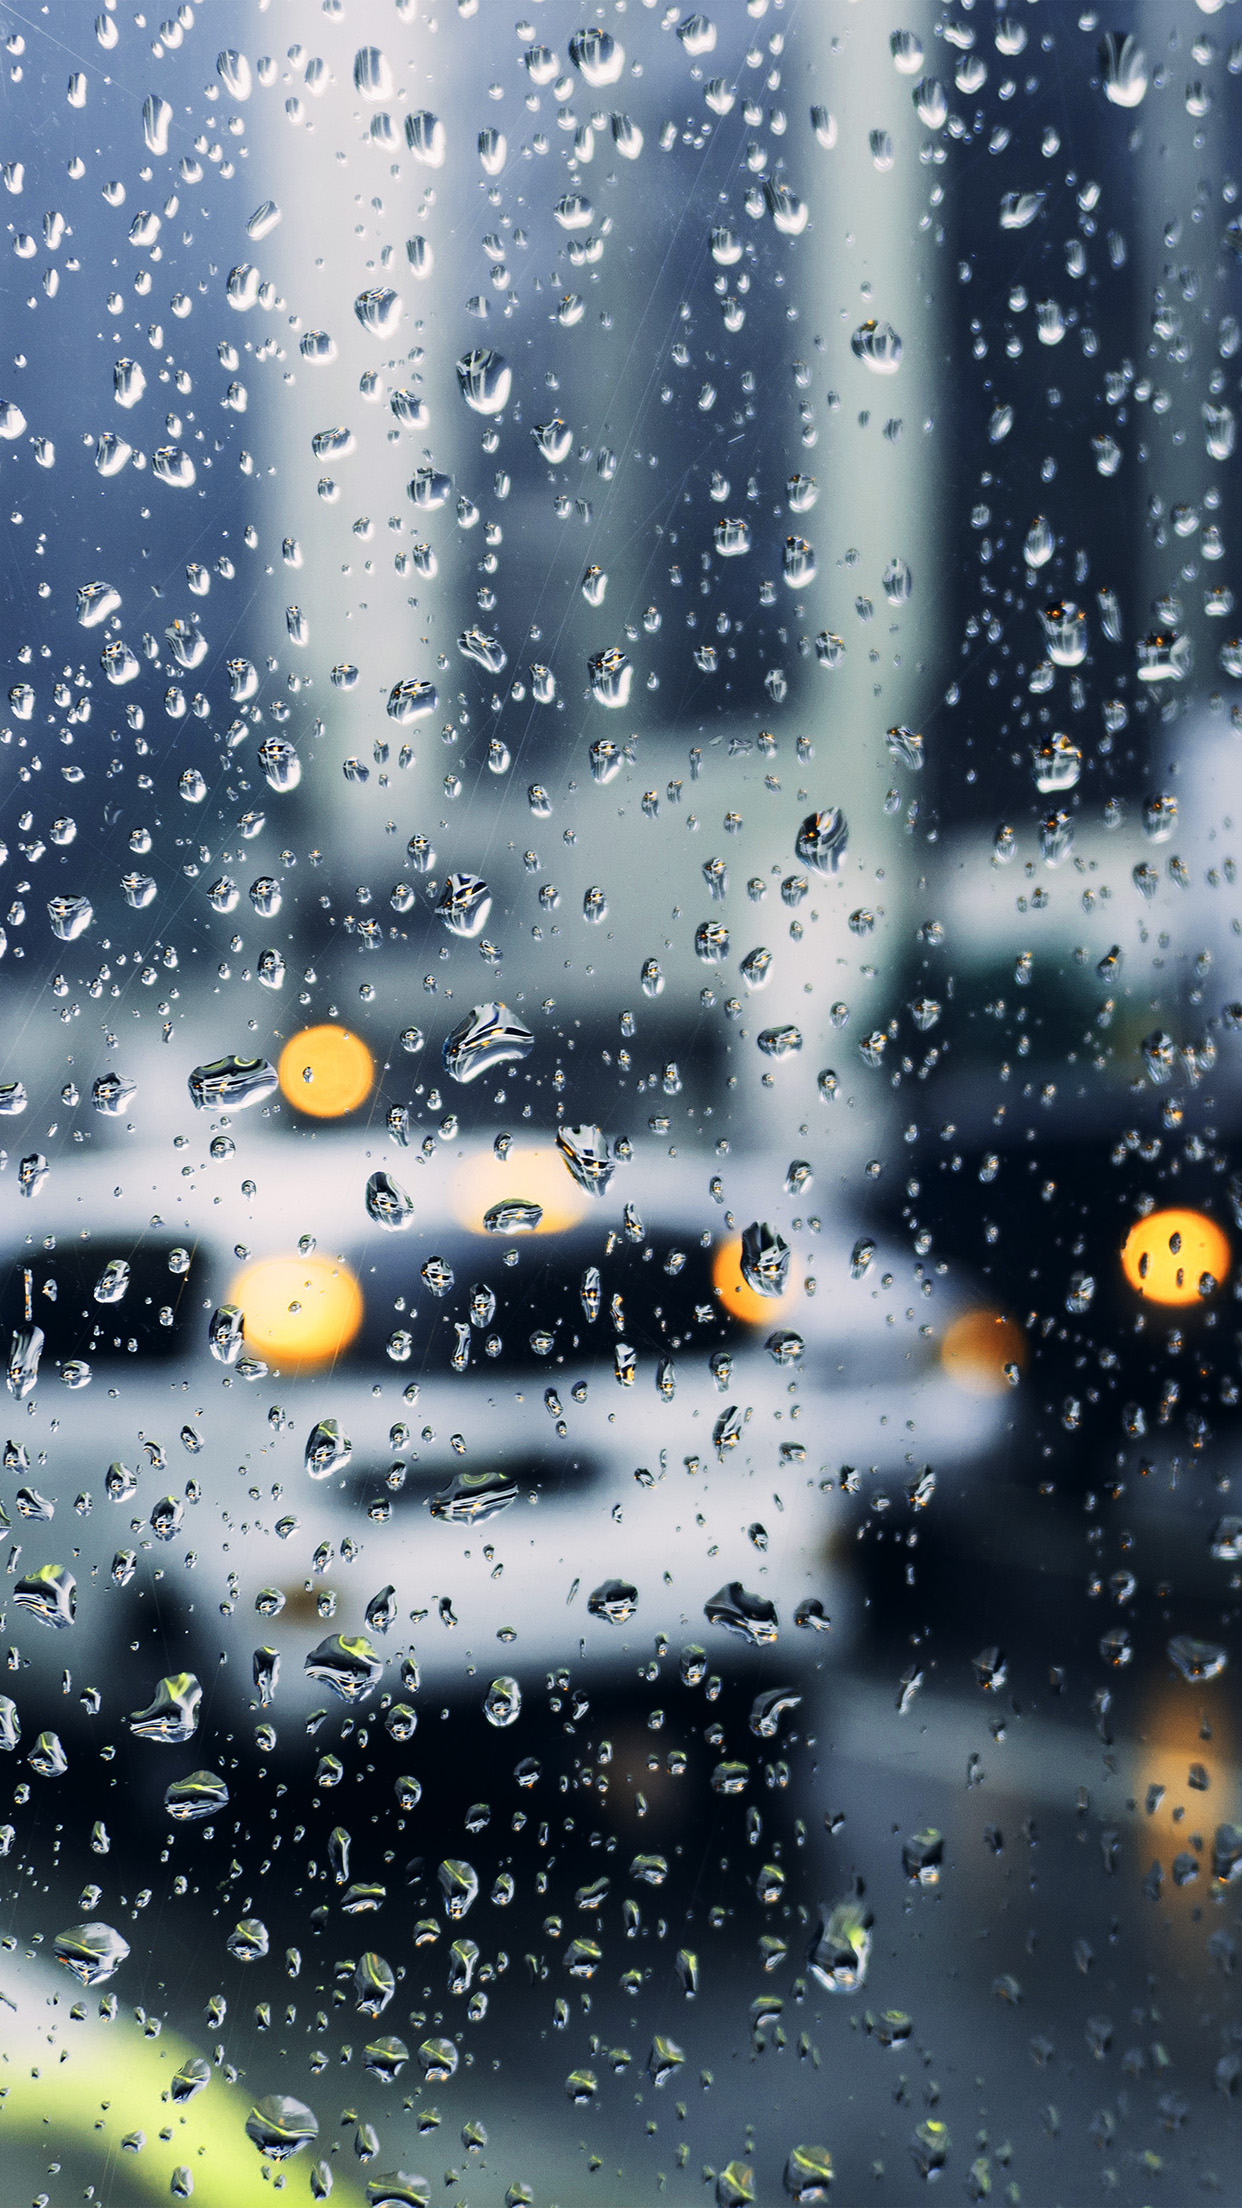 Sad Rain Pictures Posted By John Peltier